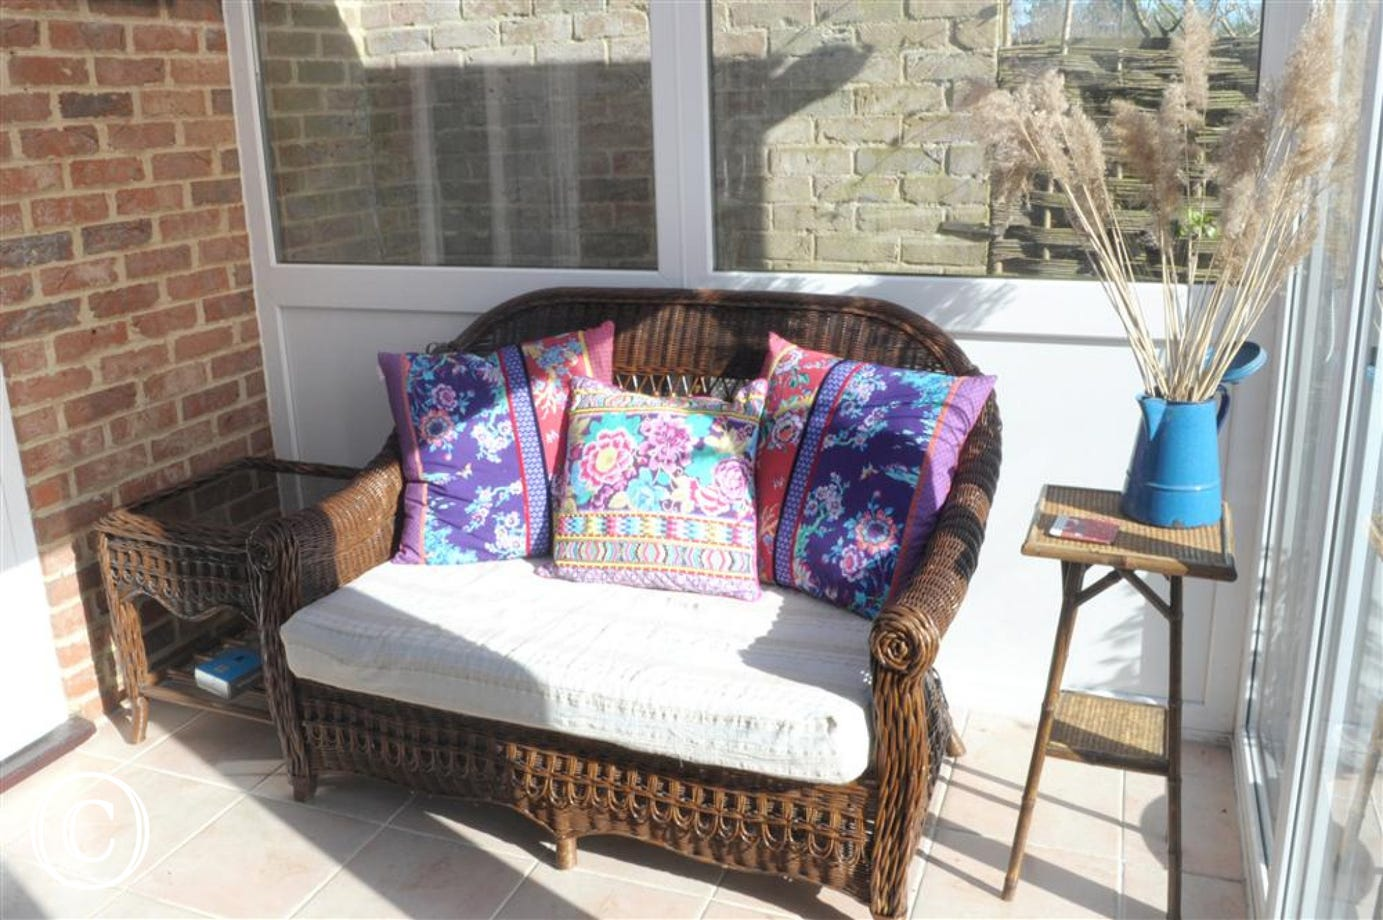 This dining room conservatory also has this nice wicker sofa with soft padding for the seat so you can enjoy the sunshine.